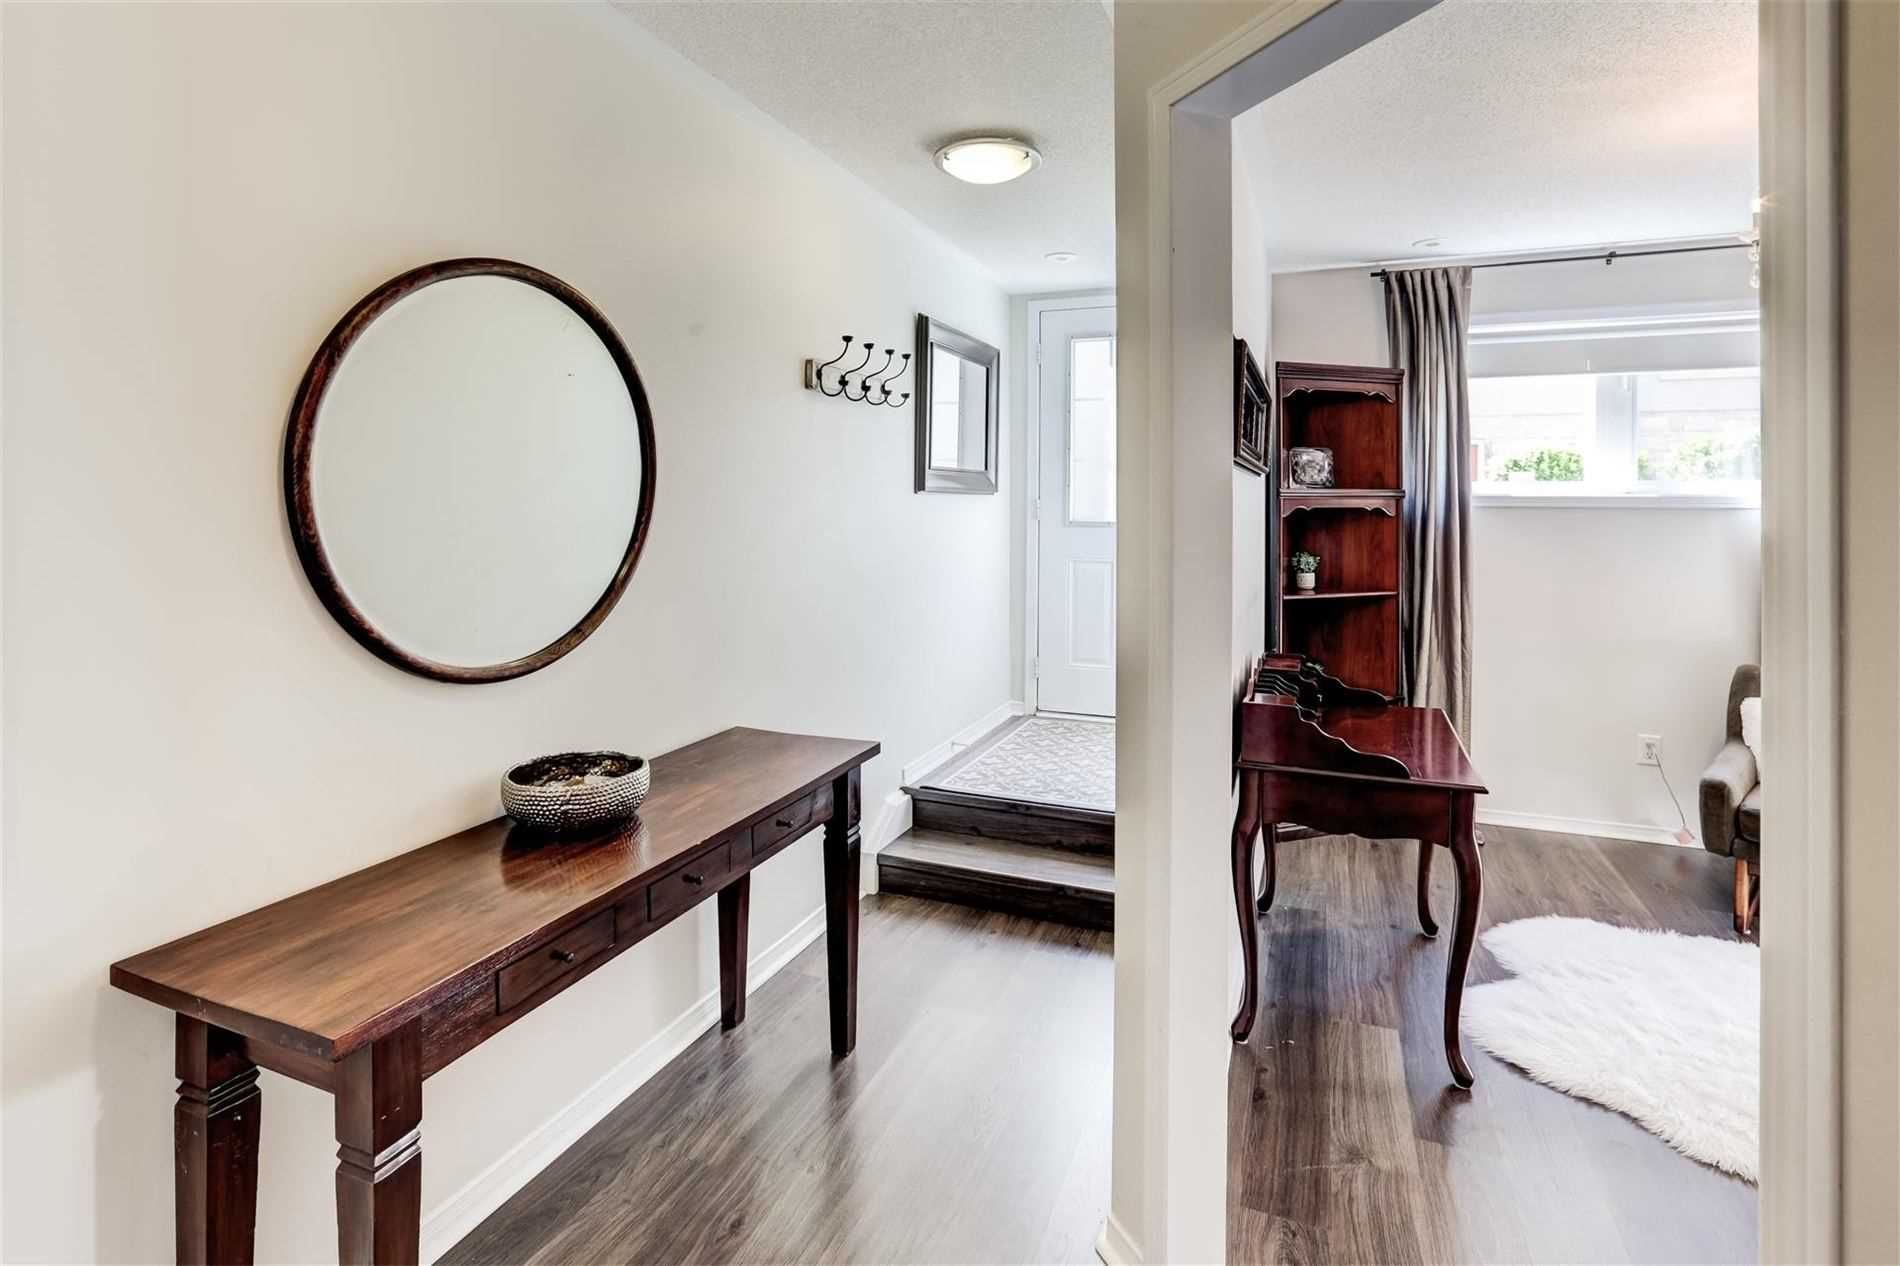 31 Foundry Ave, unit 25 for sale in Toronto - image #2